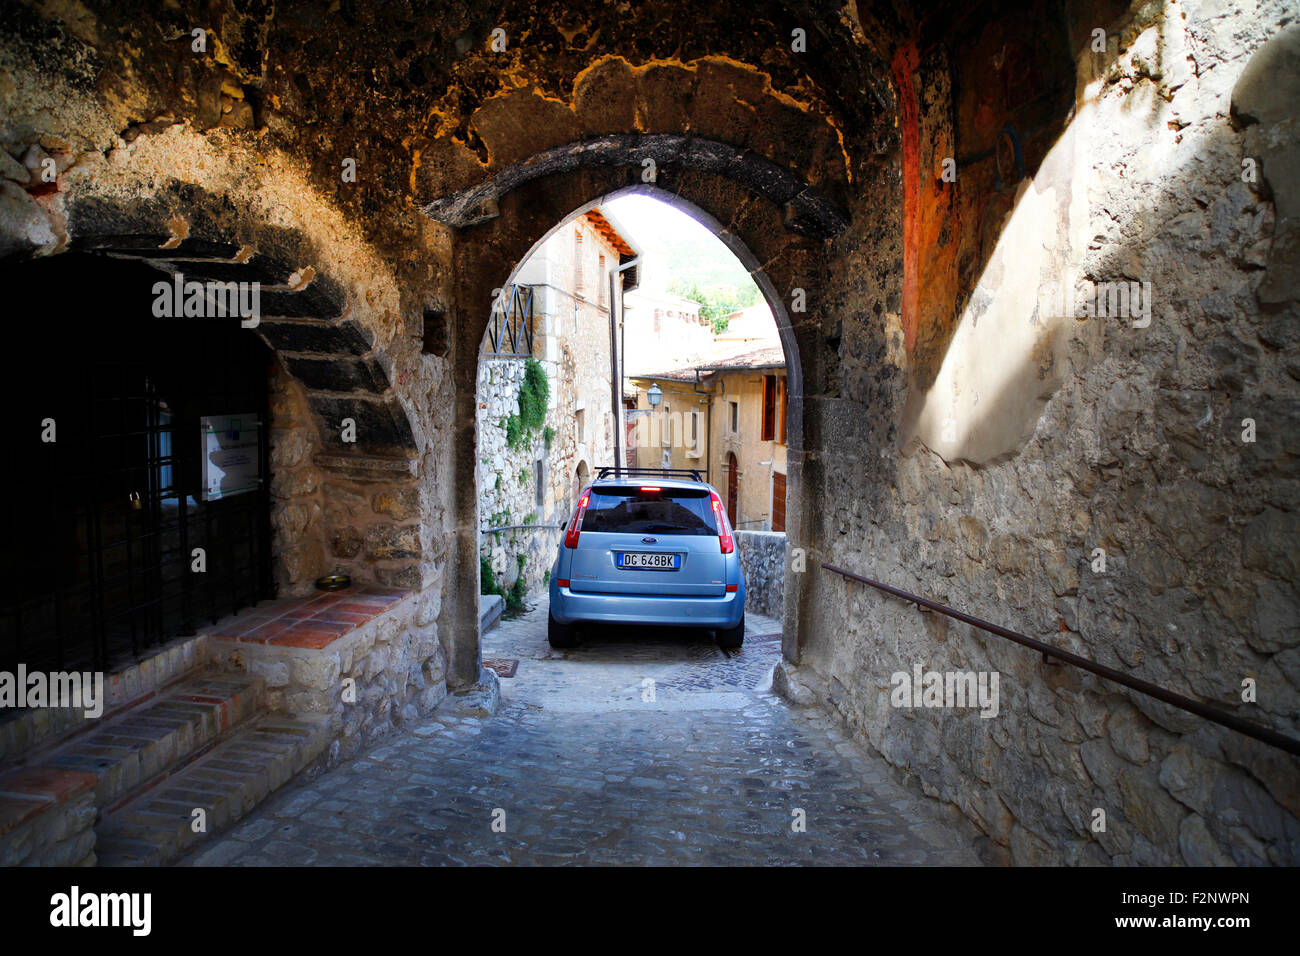 A car negotiates the tight streets in the medieval village of Fontecchio in Italy. - Stock Image